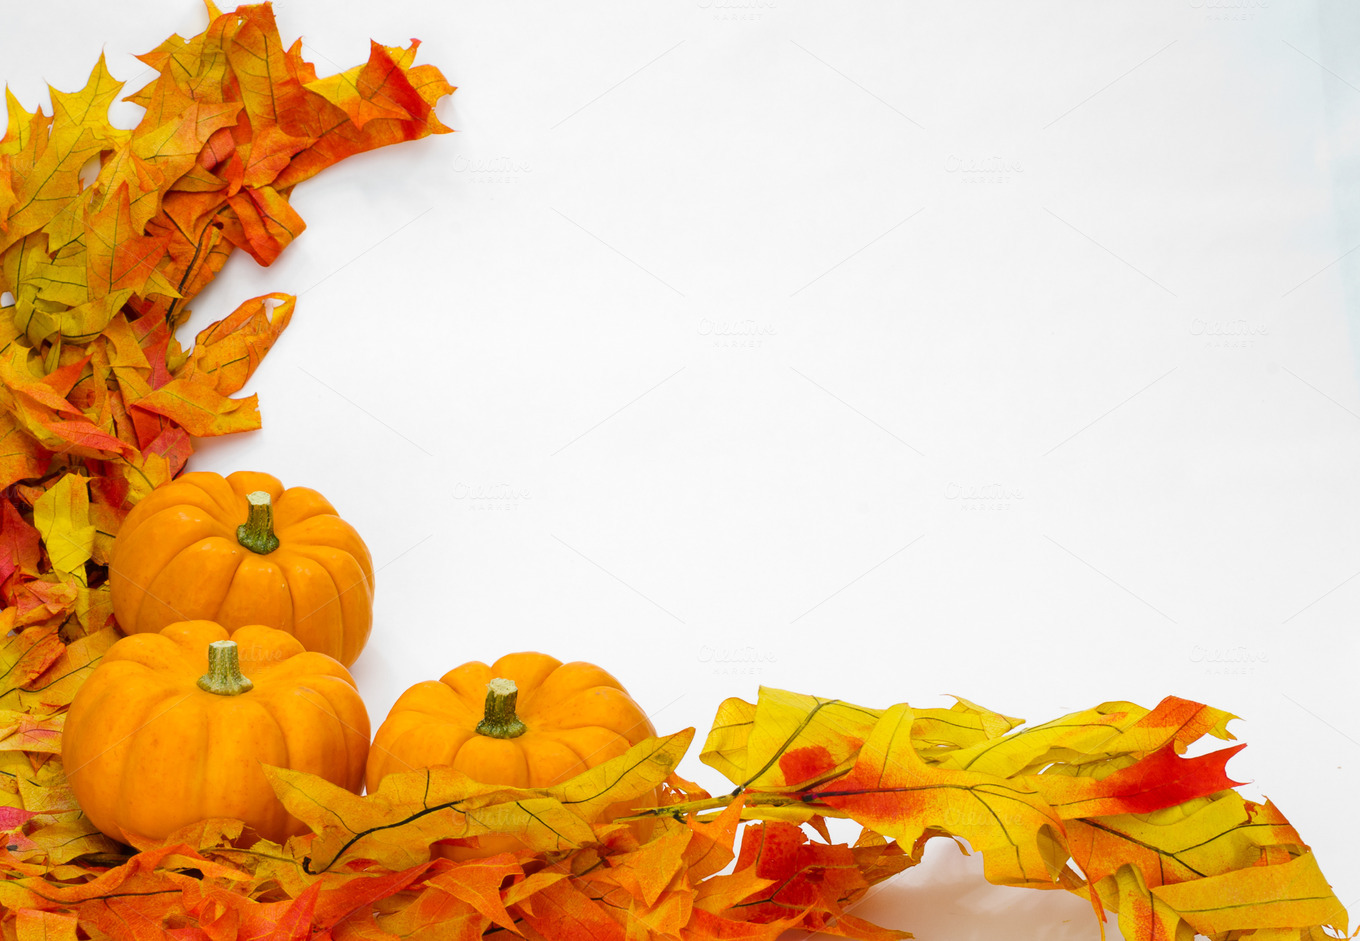 Fall Decorations With Leaves Holiday Photos On Creative Market